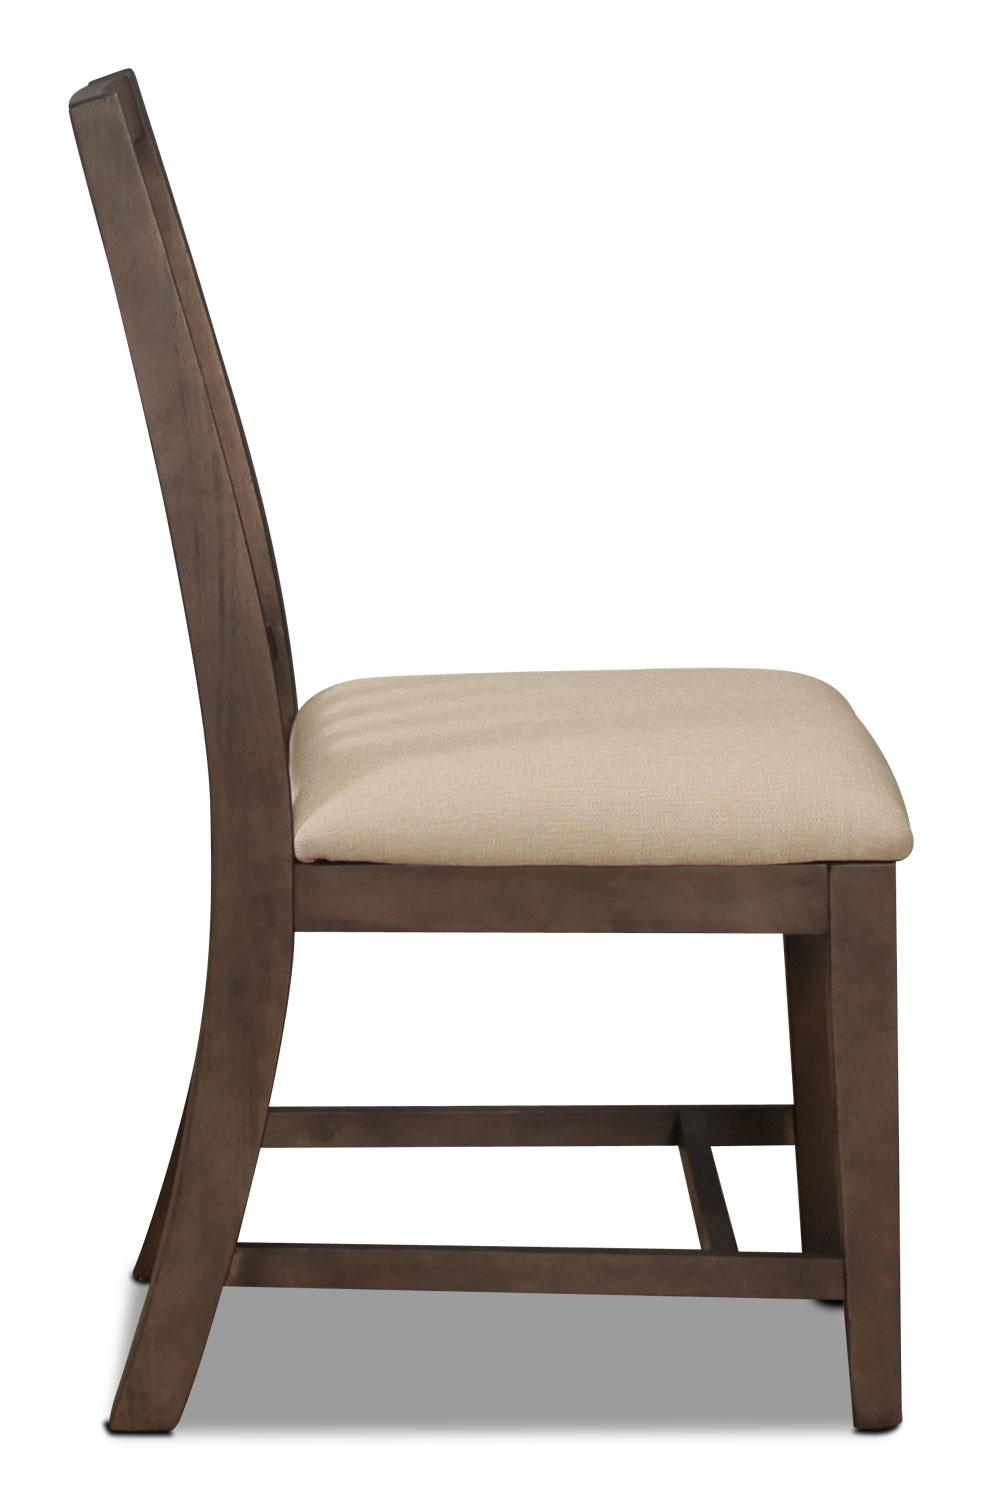 Inspiration about Pertaining To Magnolia Home Revival Arm Chairs (#19 of 20)